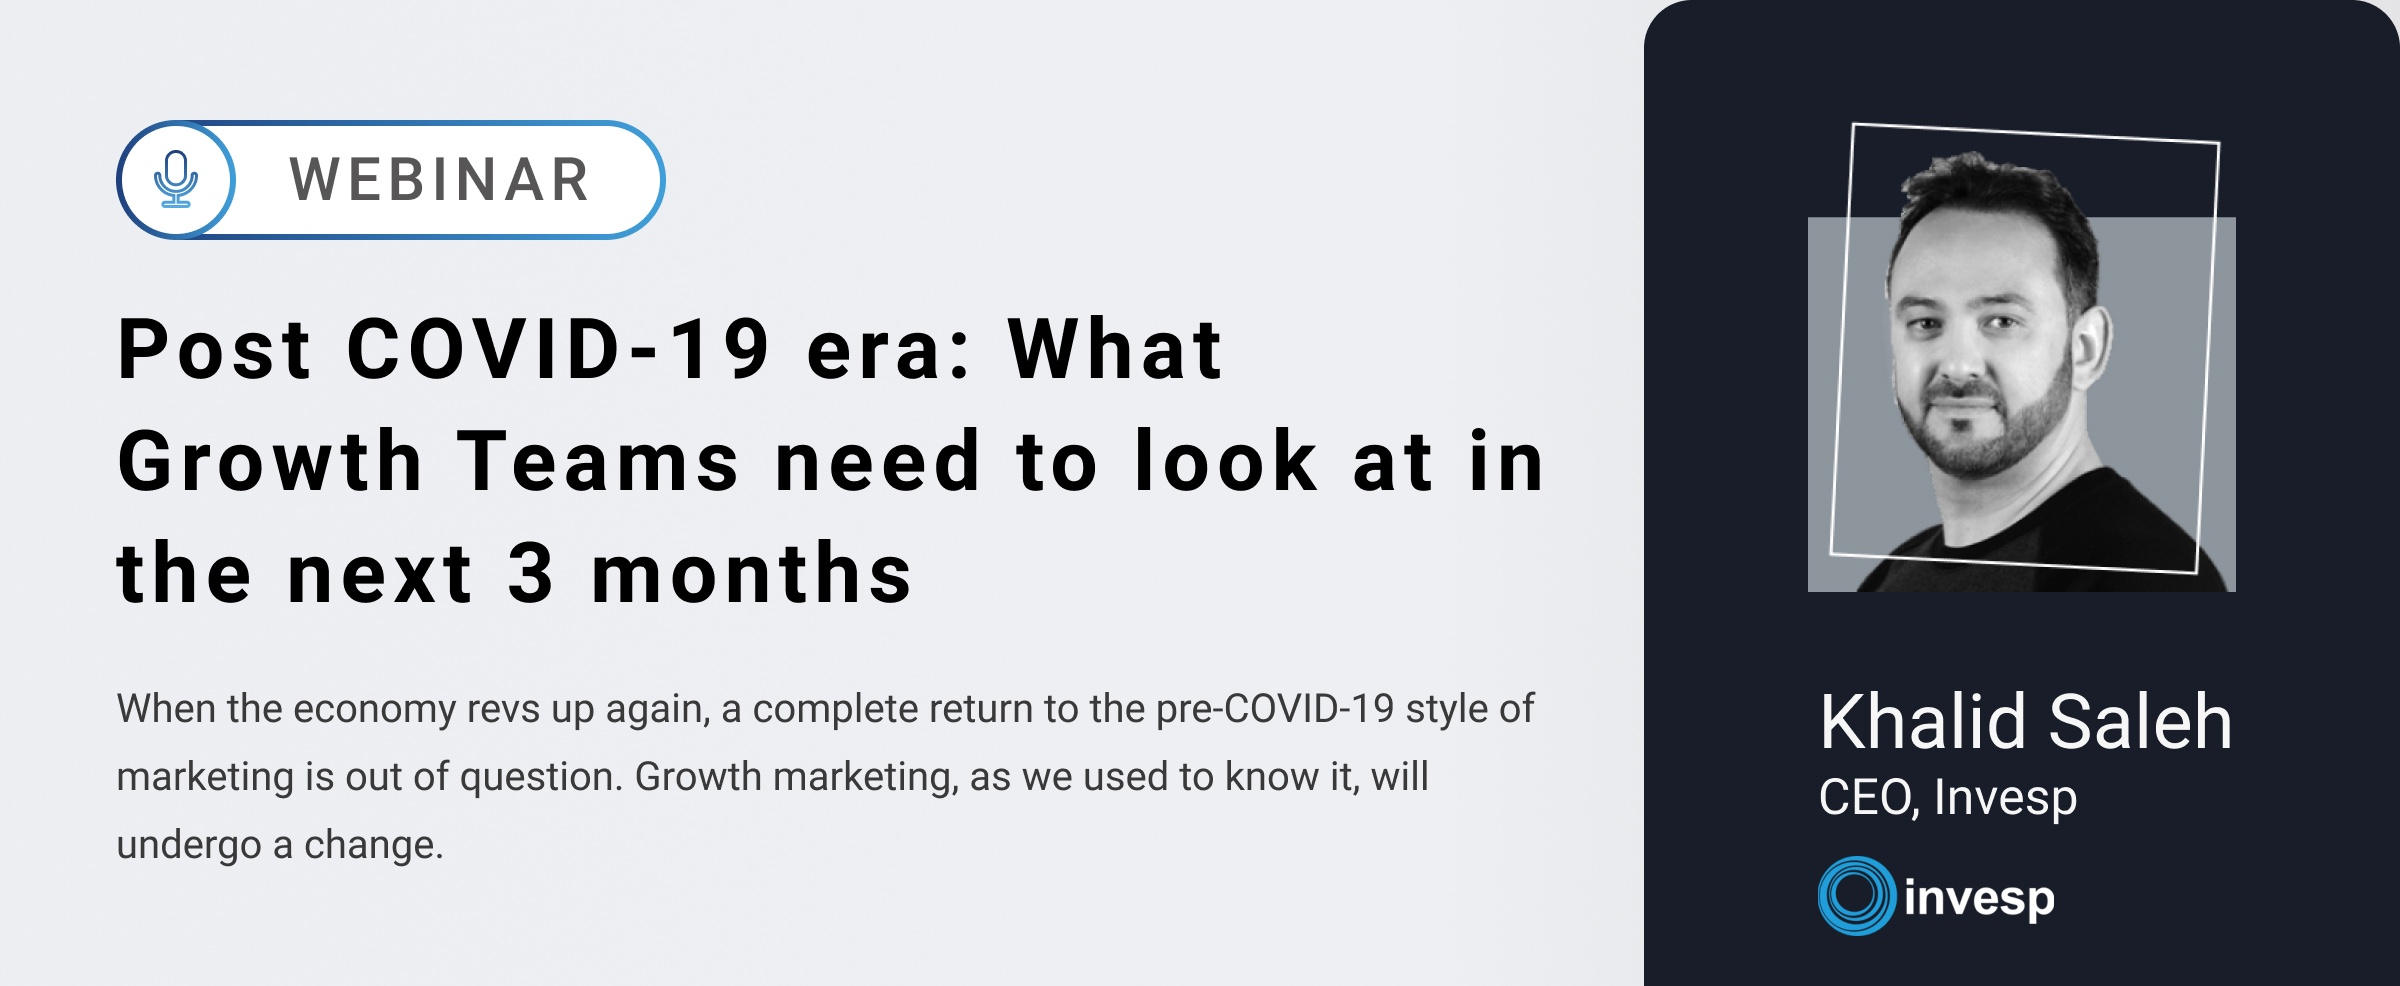 Post COVID-19 era: What Growth Teams need to look at in the next 3 months